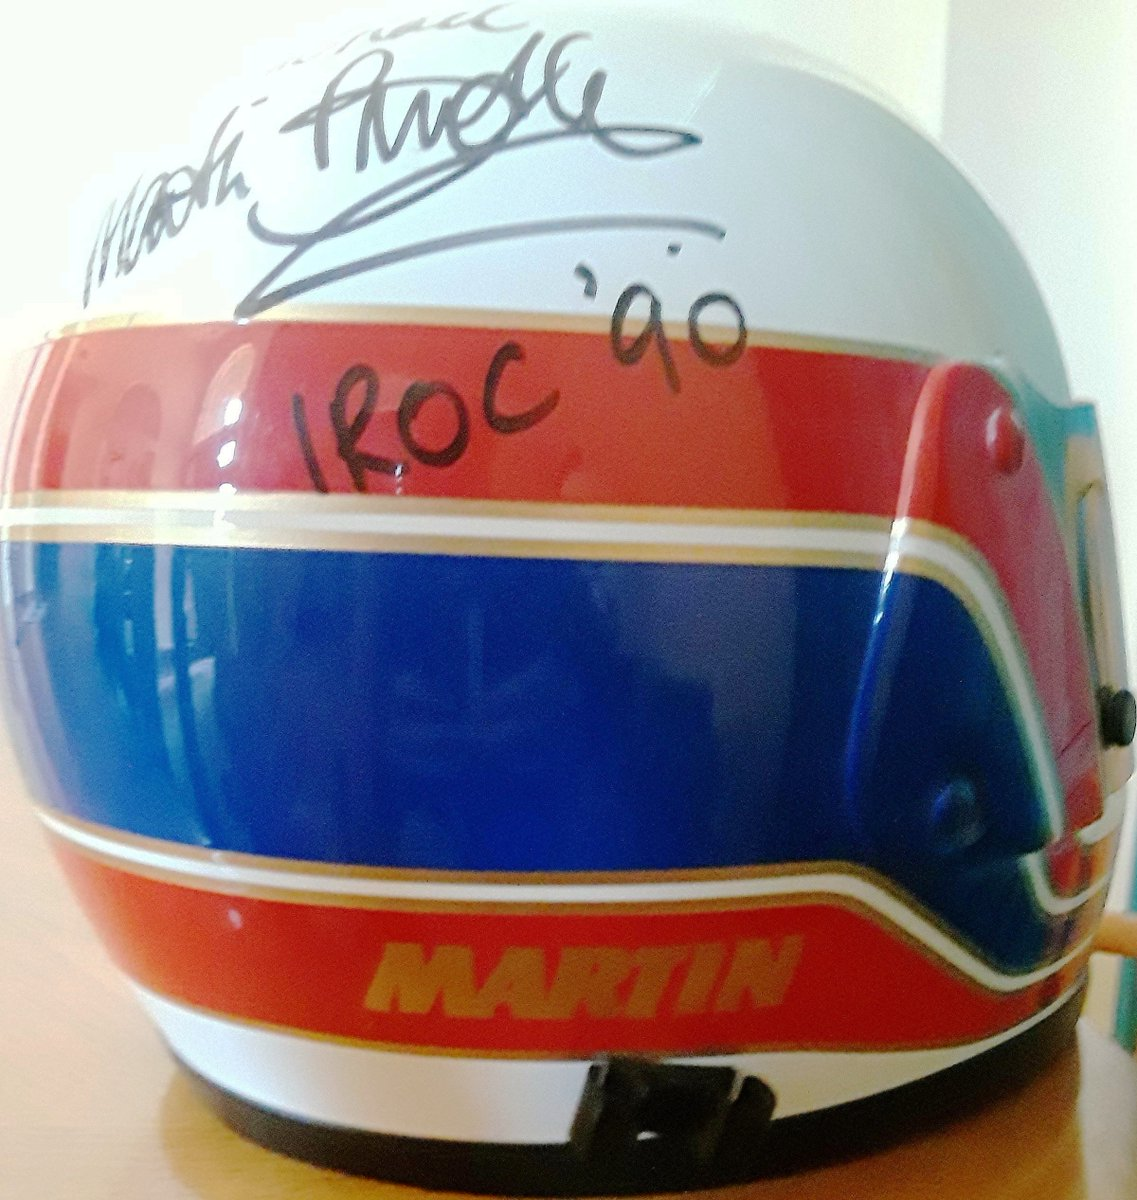 REMEMBER WHEN? WEDNESDAY: @F1 's increasing 🇺🇸 @ESPN viewership has more enjoying @MBrundleF1 's entertaining @SkySportsF1 commentary. I arranged an invite for Martin in 1990 IROC. He won Cleveland; was 3d in points. He gave me his signed helmet. More @SilverstoneUK this weekend. https://t.co/P0Tqjq5bv4